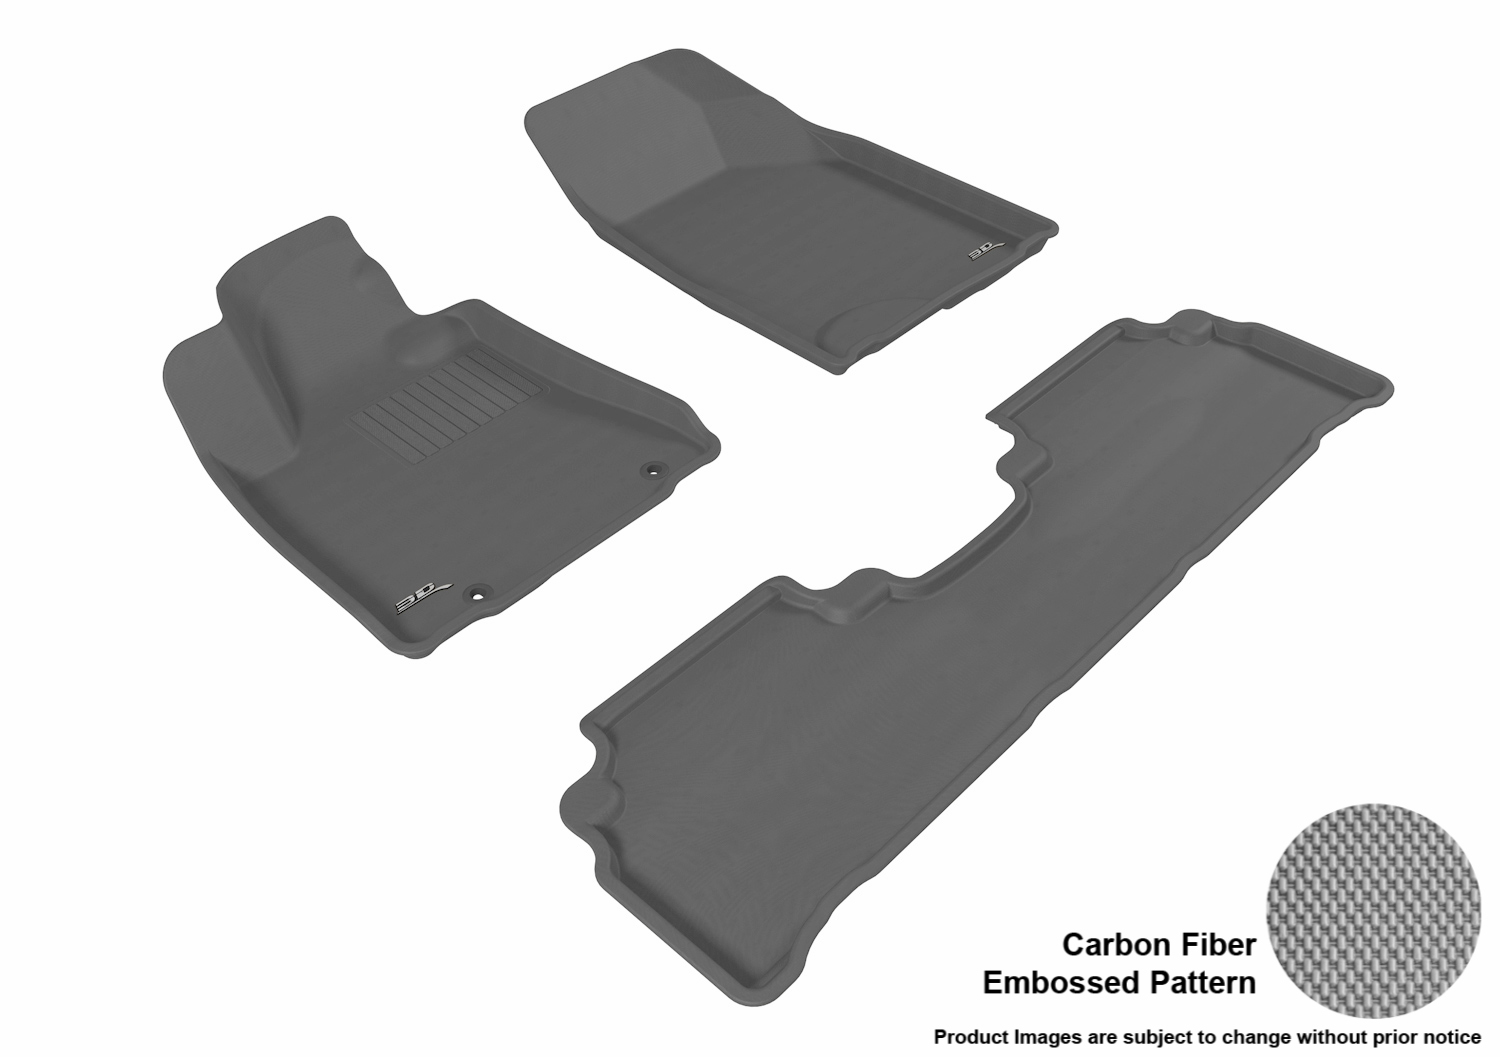 lexus rx330 350 2004 2009 kagu gray r1 r2 l1lx01001501 floor mats. Black Bedroom Furniture Sets. Home Design Ideas